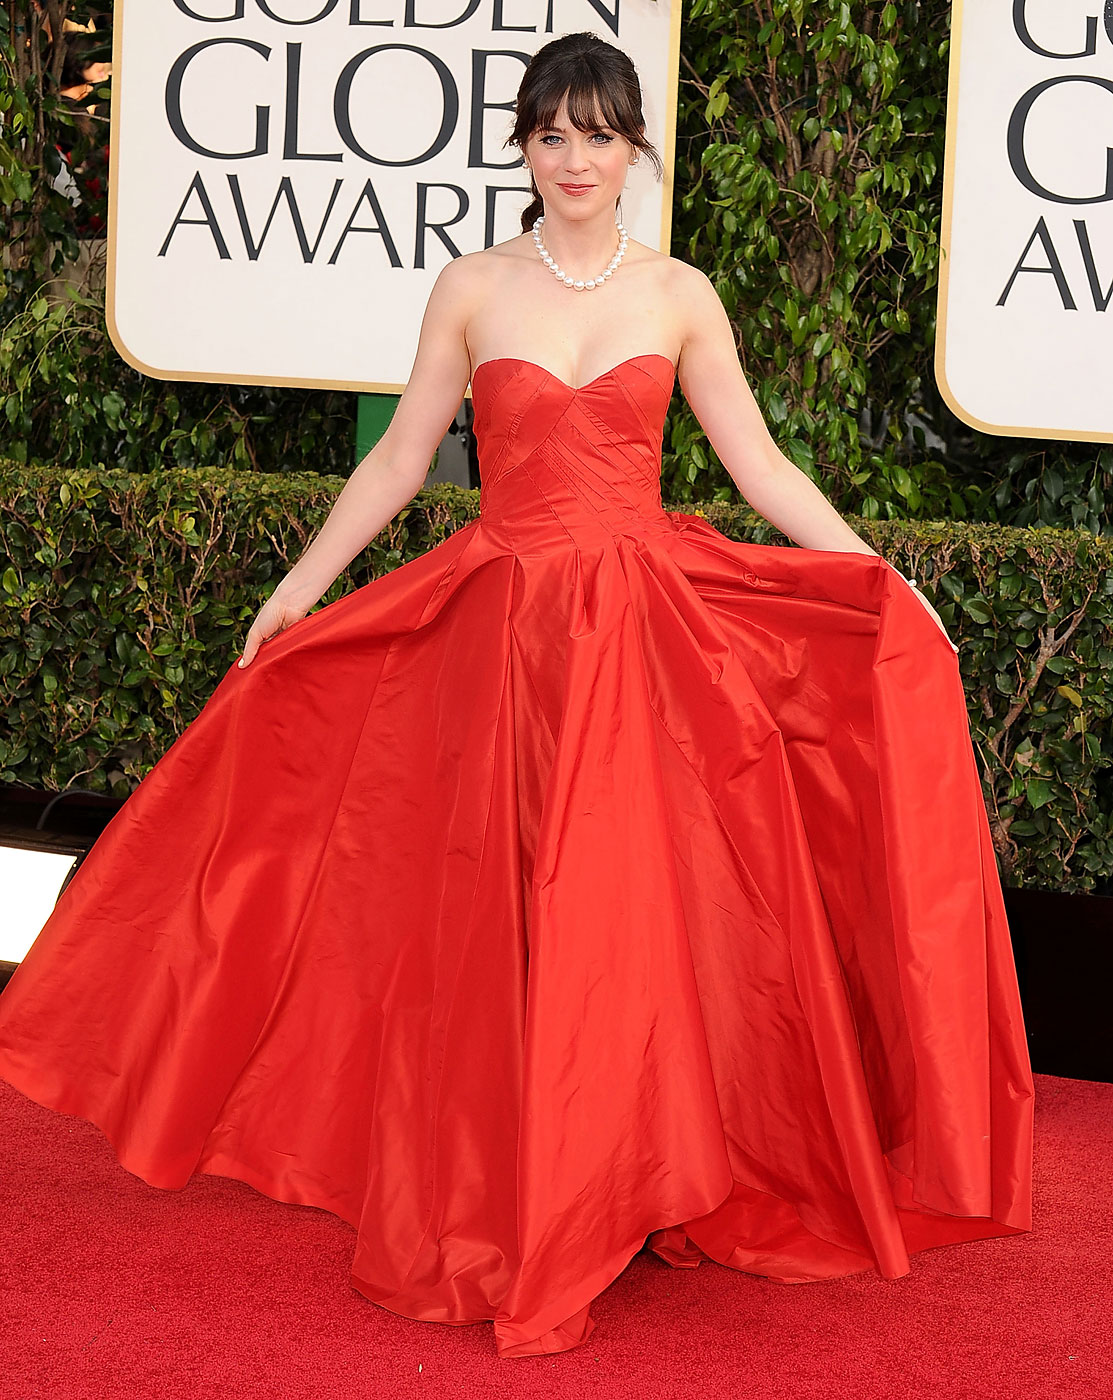 Zooey Deschanel wears Oscar de la Renta to the 70th Annual Golden Globe Awards at The Beverly Hilton Hotel on January 13, 2013 in Beverly Hills, California.